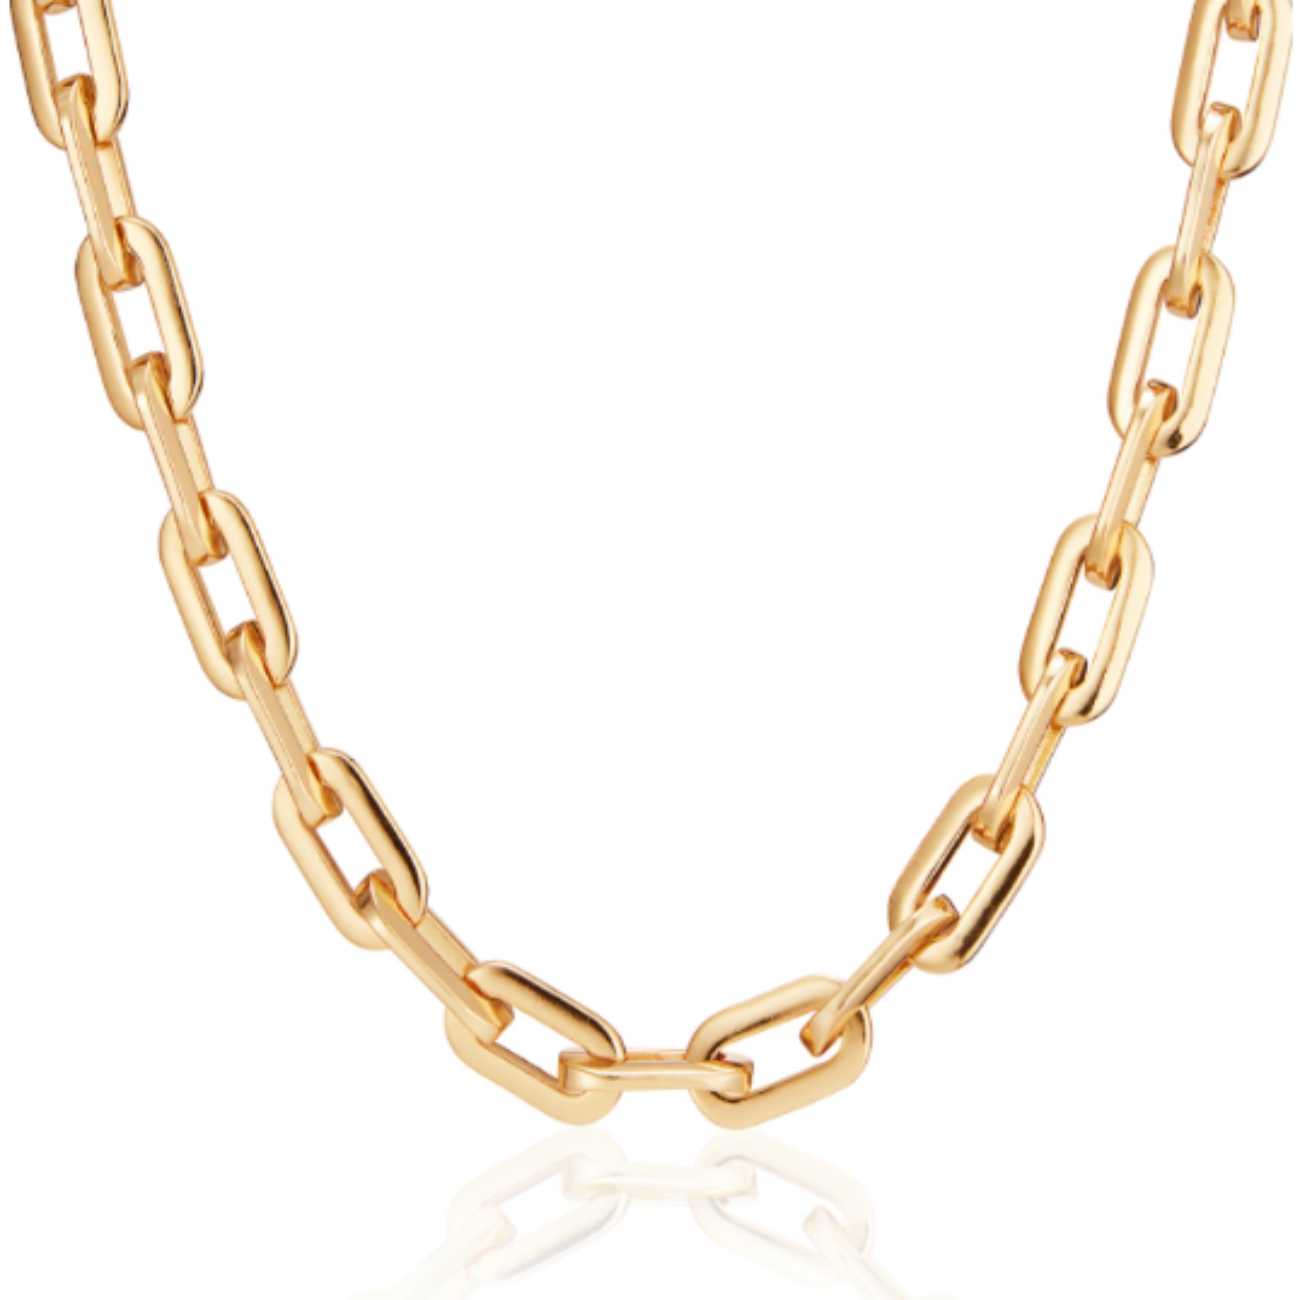 JENNY BIRD - TONI CHAIN NECKLACE IN GOLD